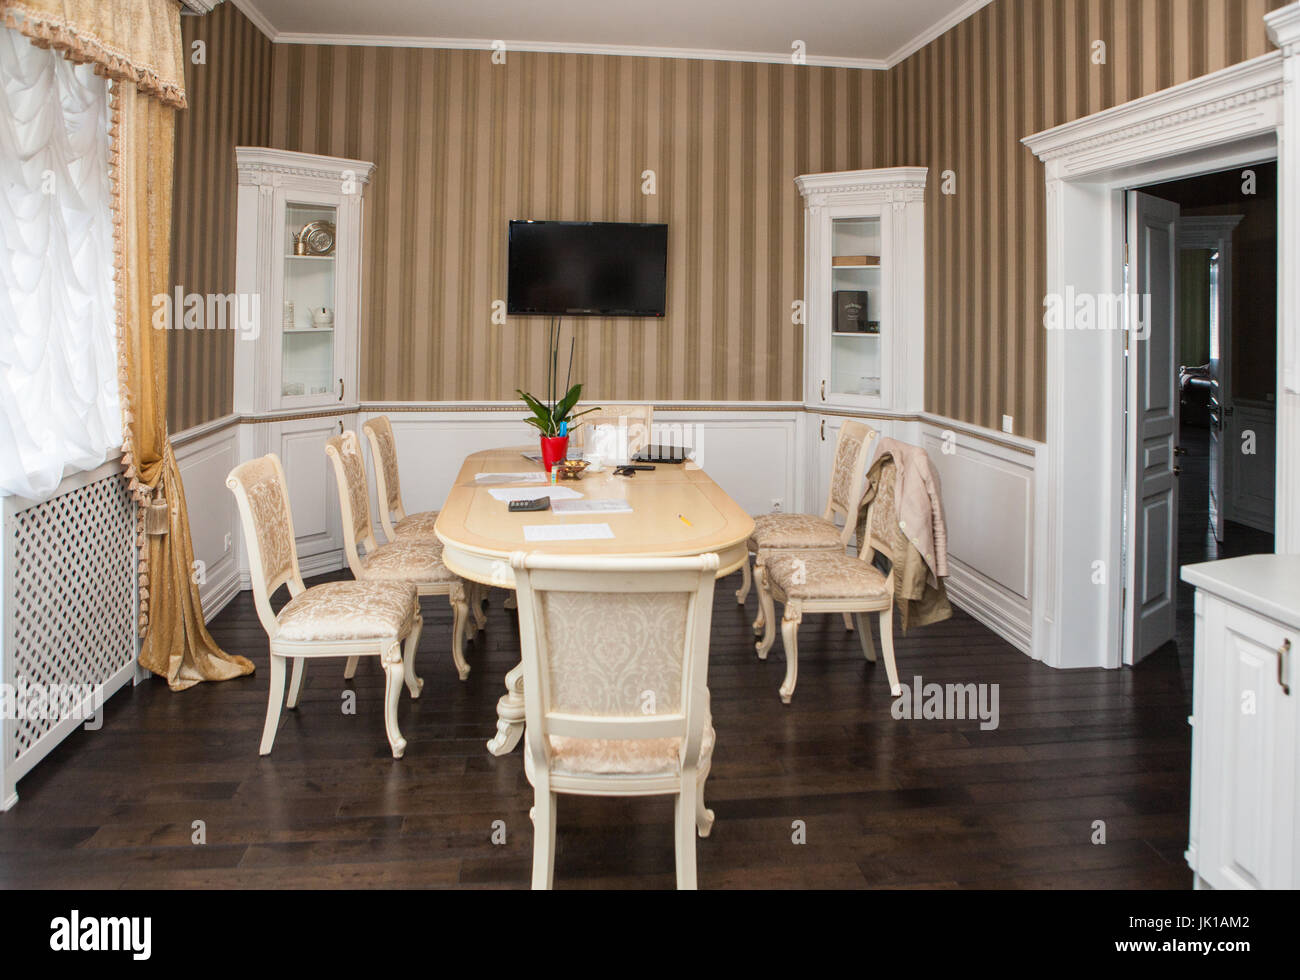 Cottage and interiors - Stock Image